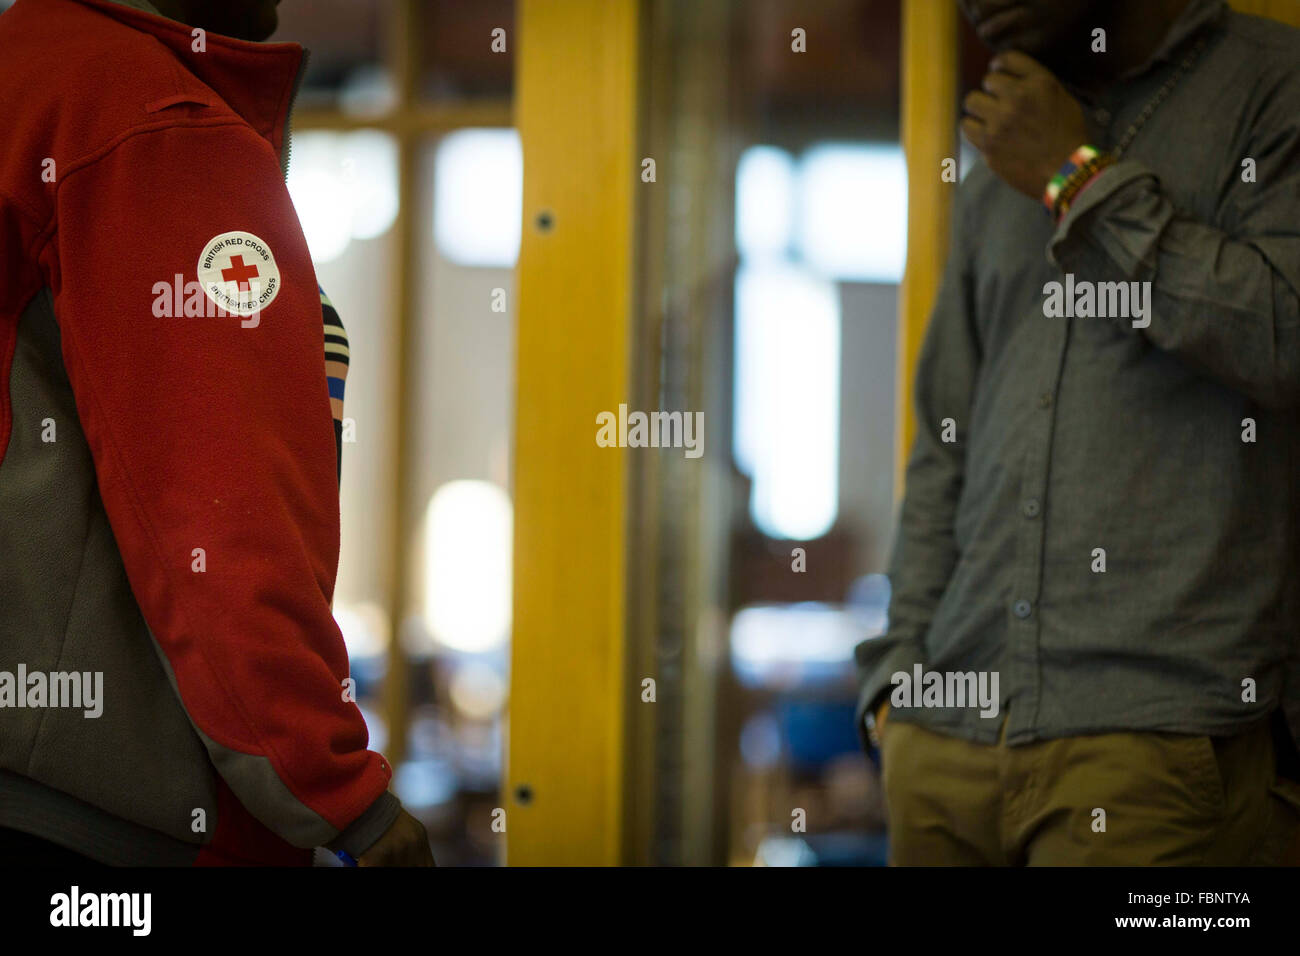 a British Red Cross volunteer chats with man at a drop in centre - Stock Image